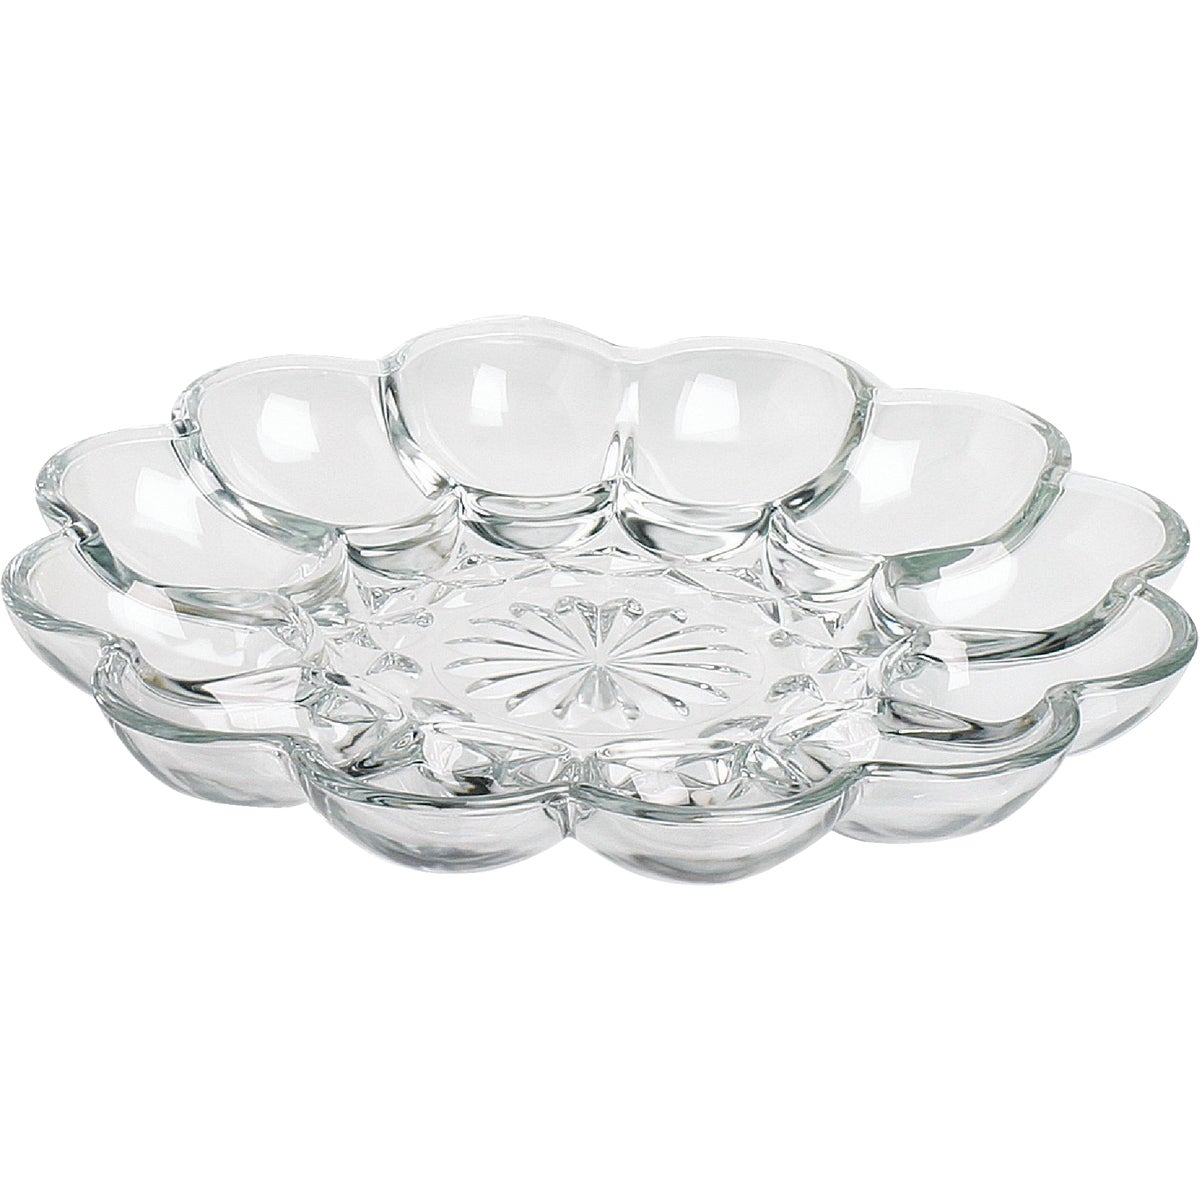 GLASS EGG PLATE - 86148 by Anchor Hckg Roberts